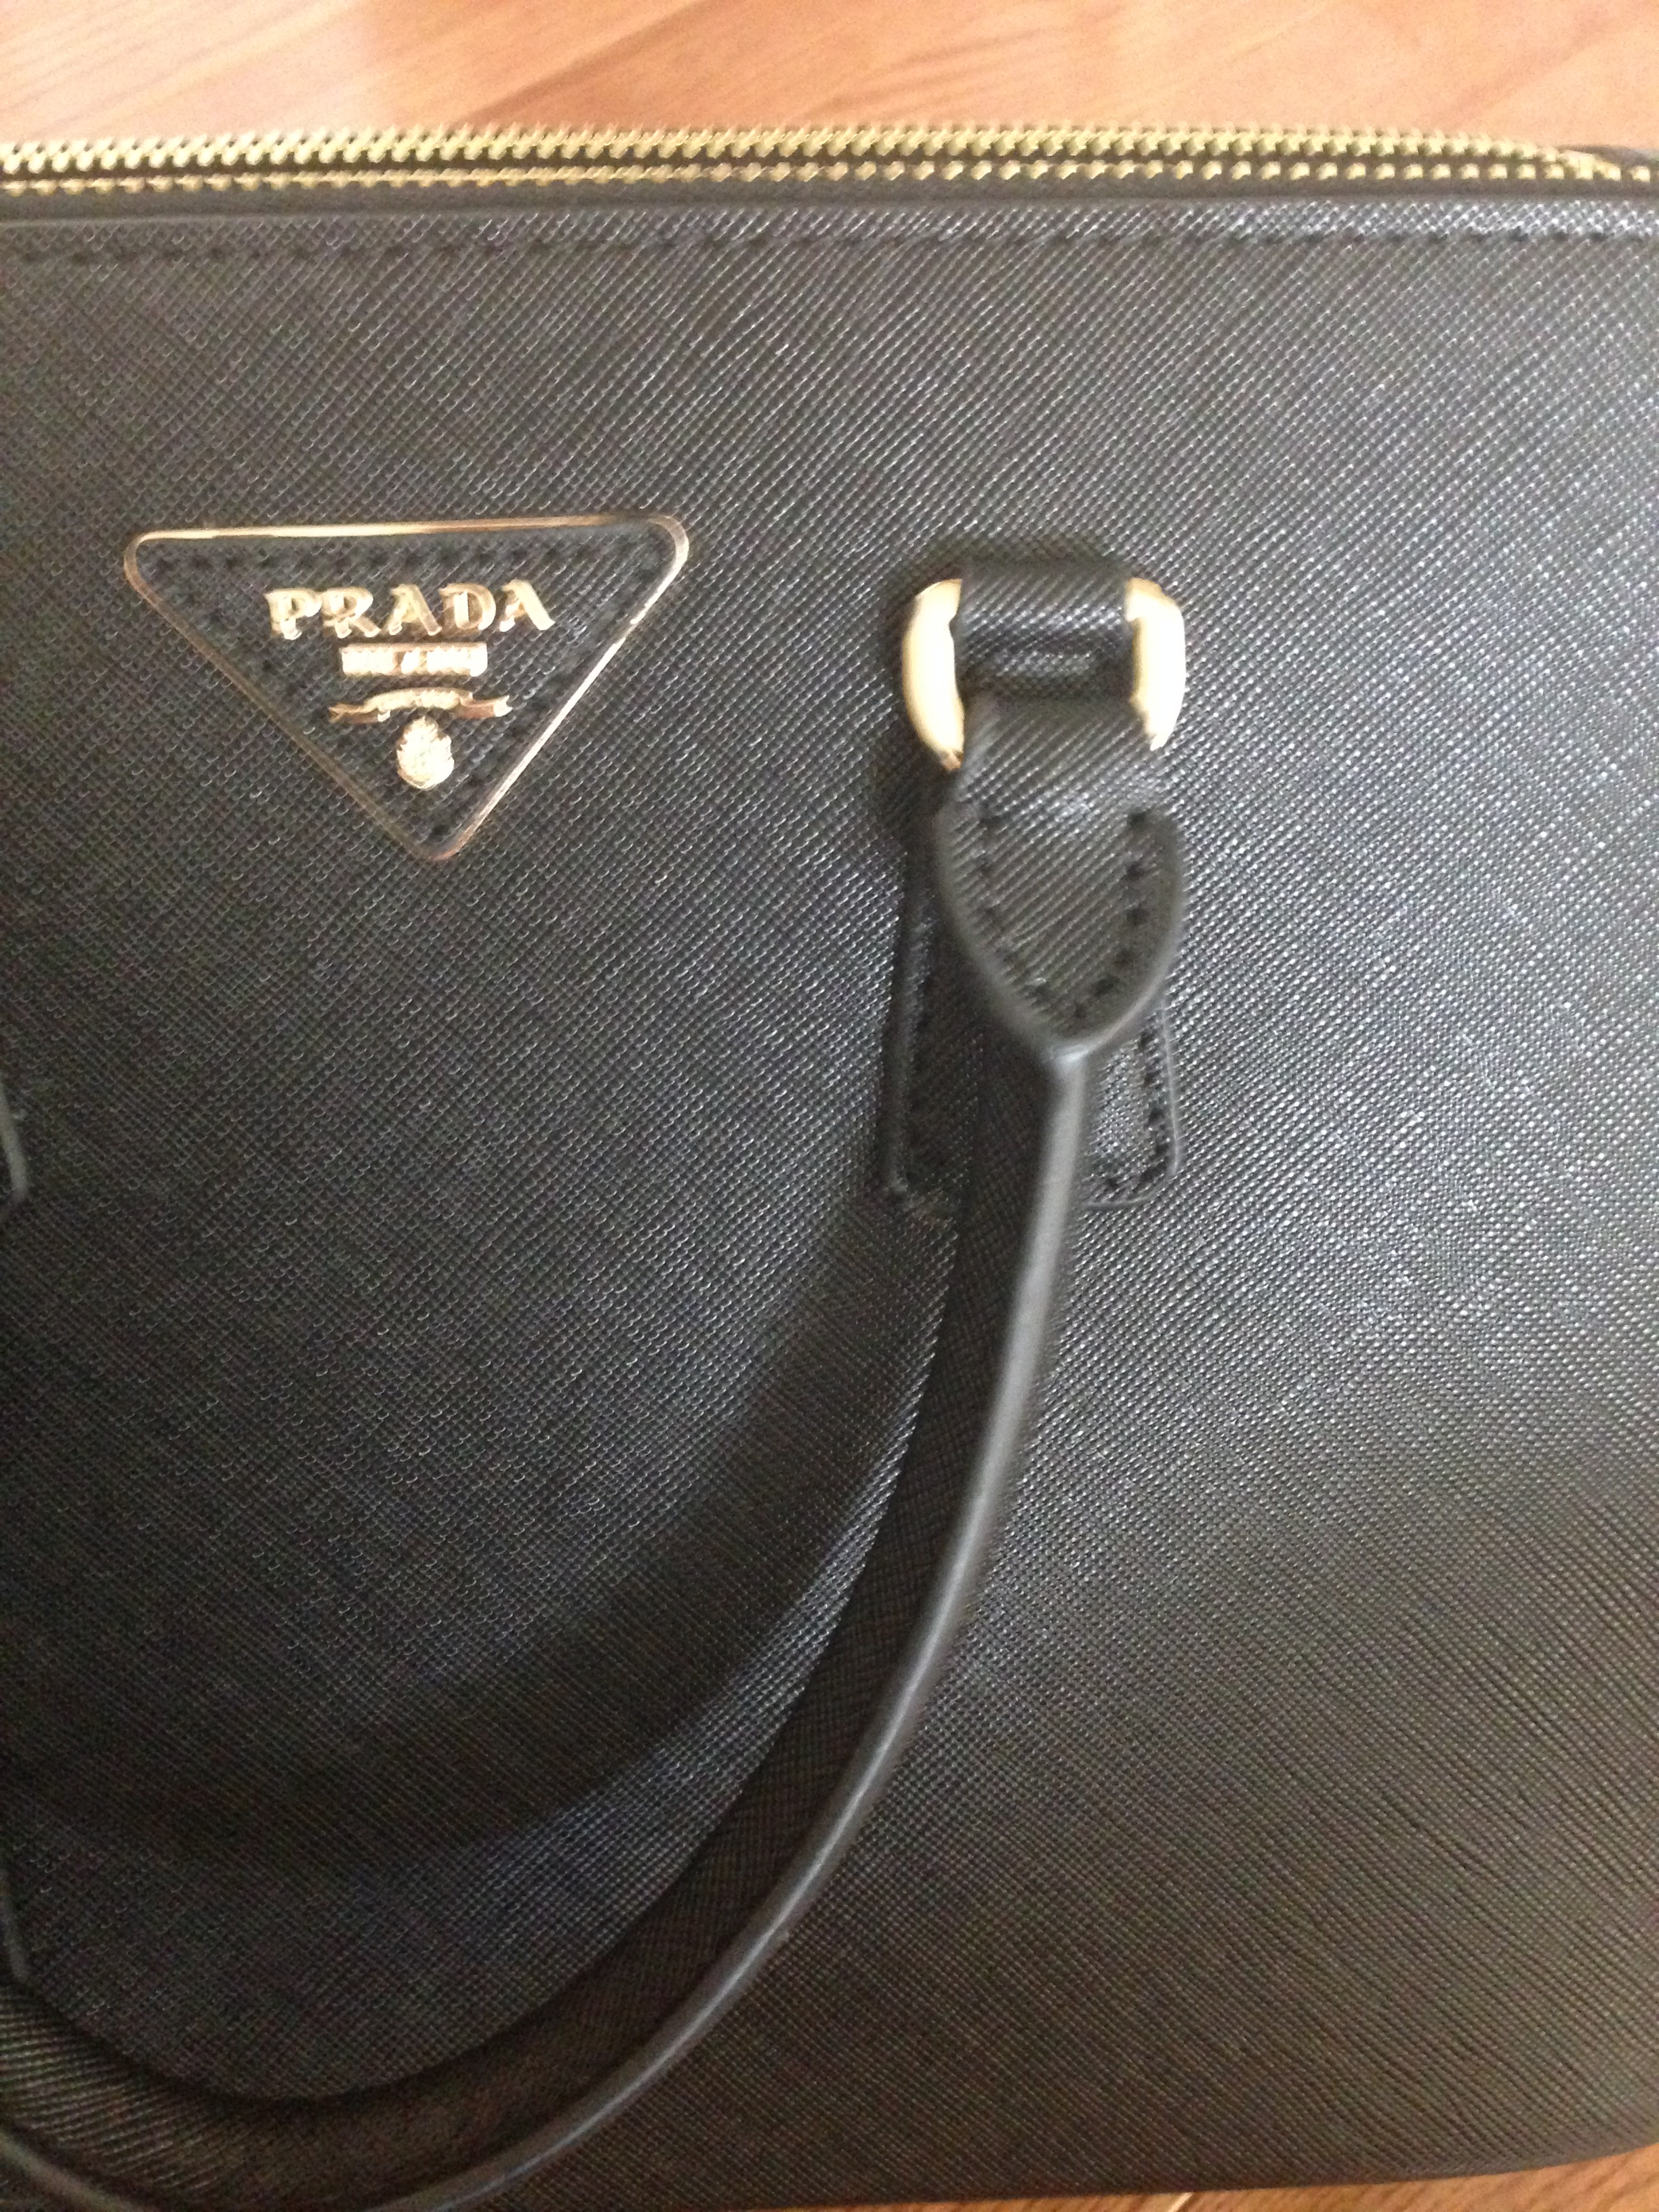 prada leather goods - fake Prada �C Authentic & Replica Bags & Replica Handbags Reviews ...